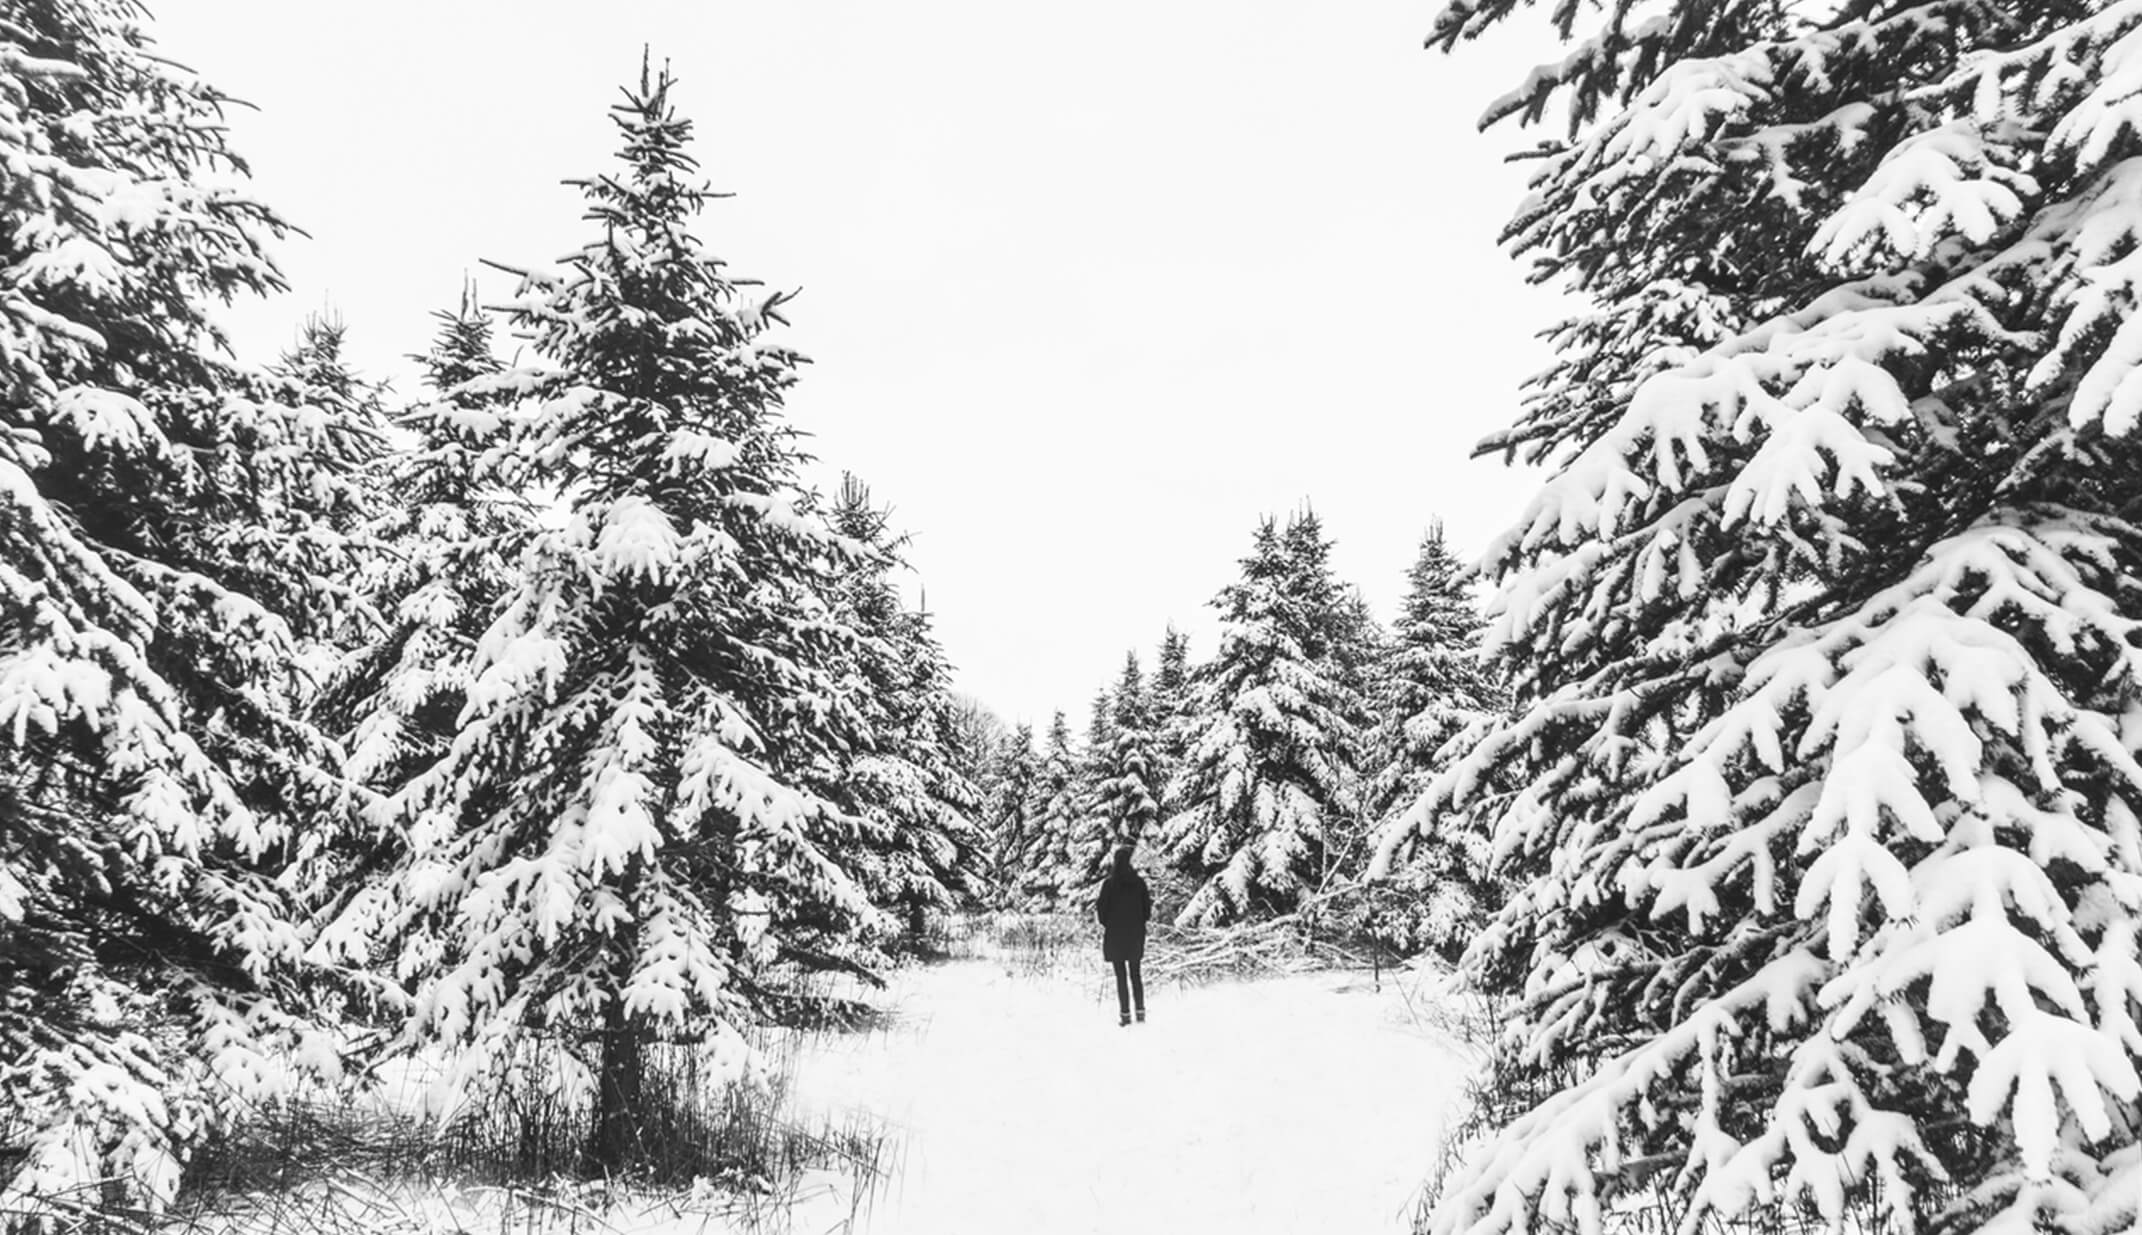 winter trees poland snow heavy view white cold street photography travel UGC content